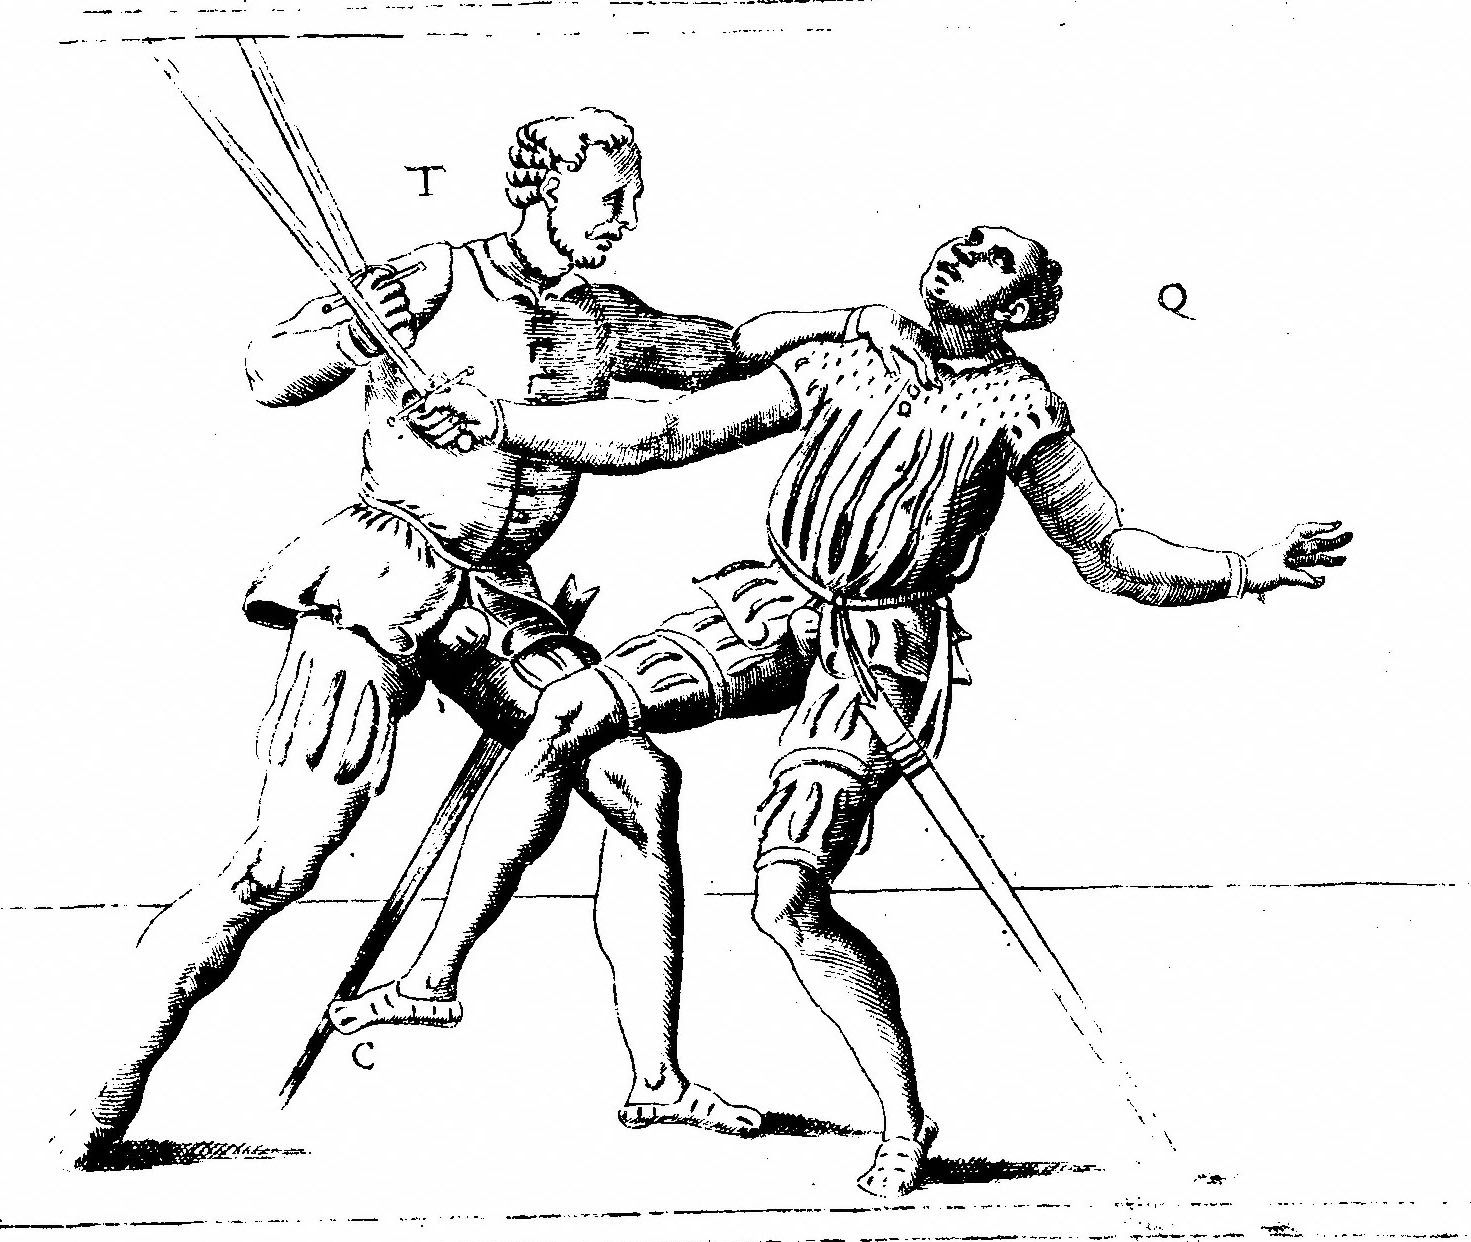 Pin by Mike Trier on Swordsmanship | Historical european martial